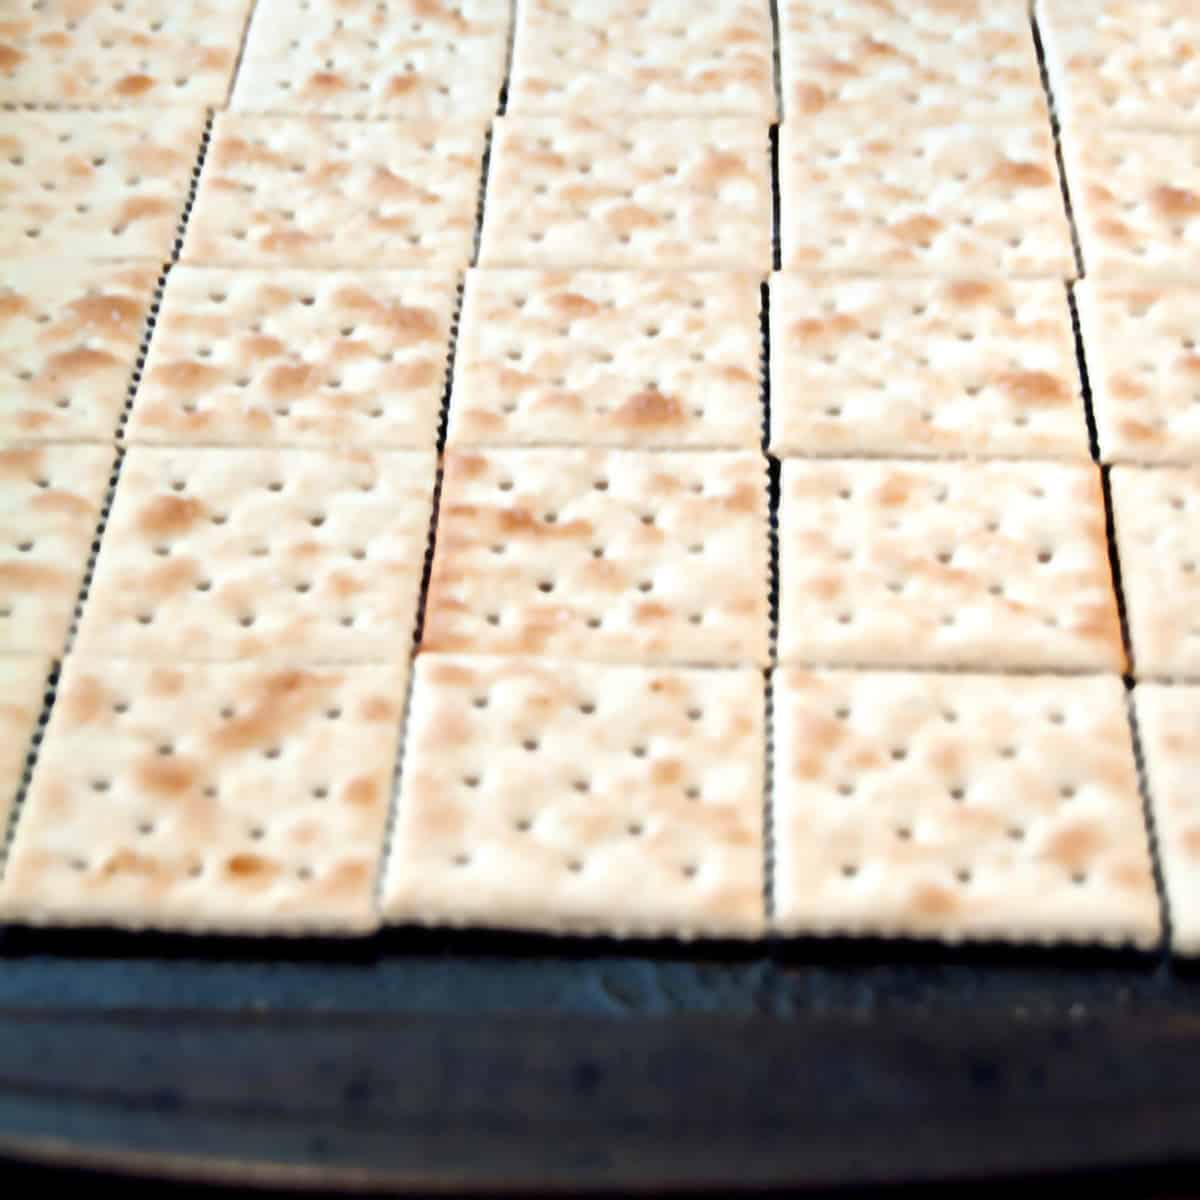 Saltine crackers lined up on a rimmed baking sheet.